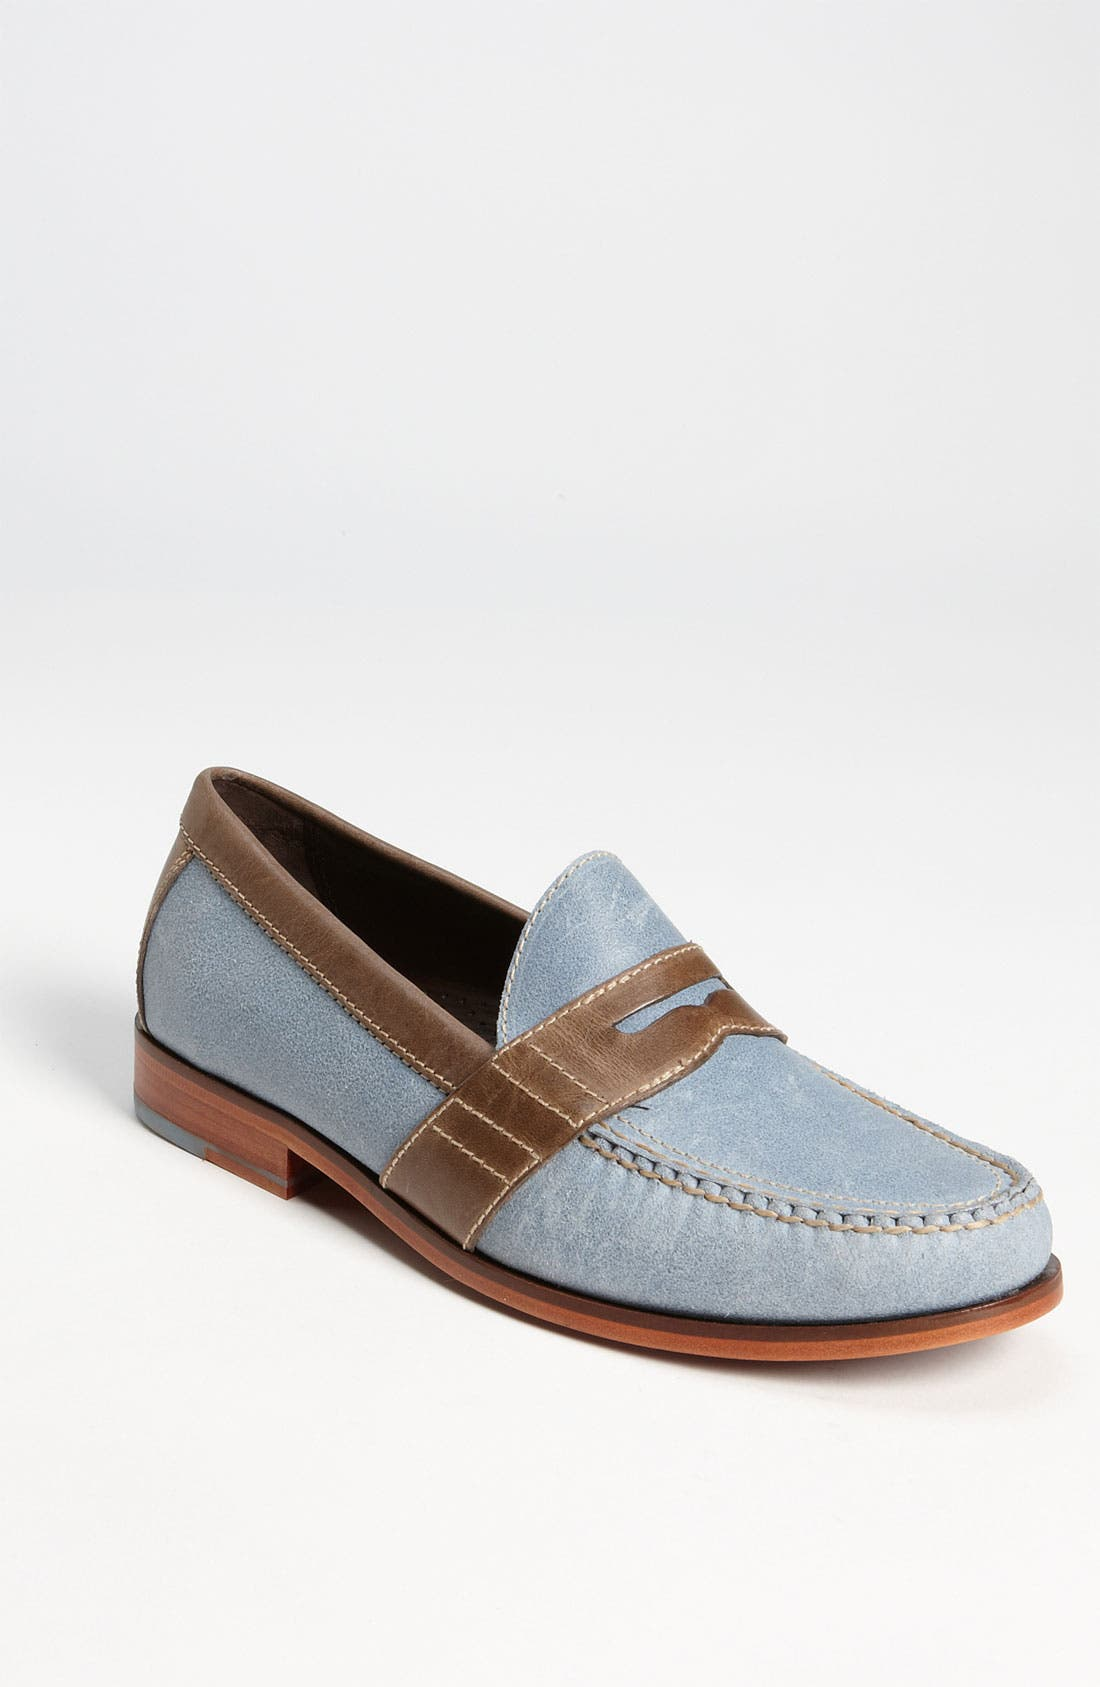 Alternate Image 1 Selected - Cole Haan 'Air Monroe' Loafer